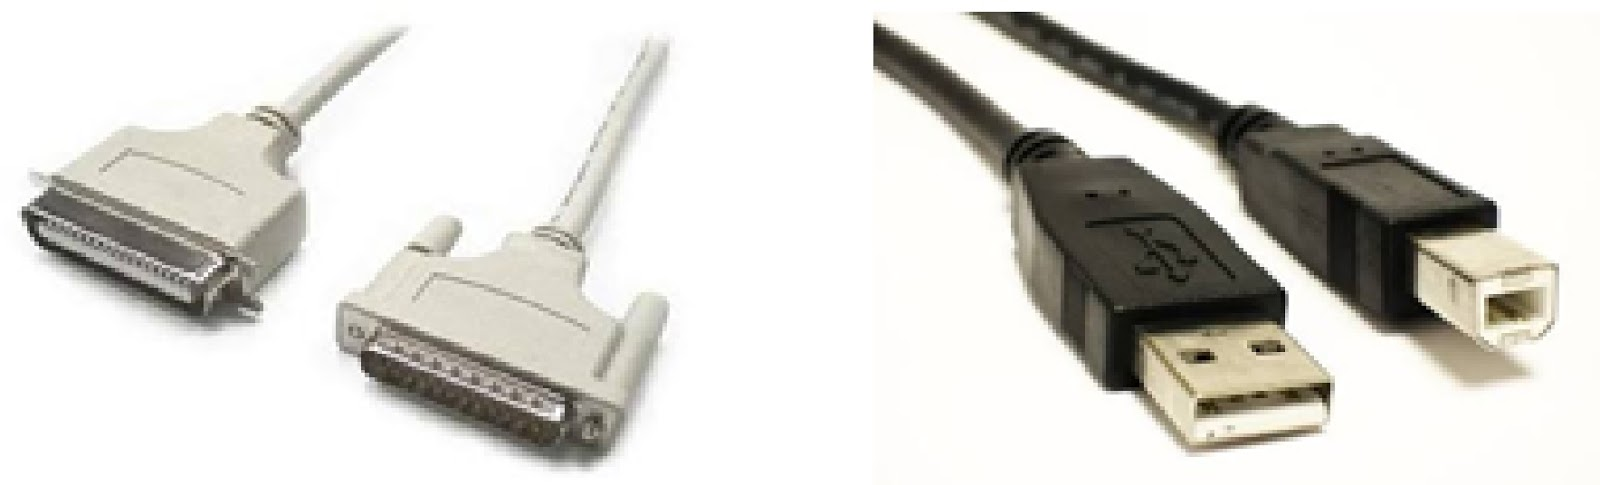 ADEDAN COMPUTER TECHNOLOGY: COMPUTER CABLES